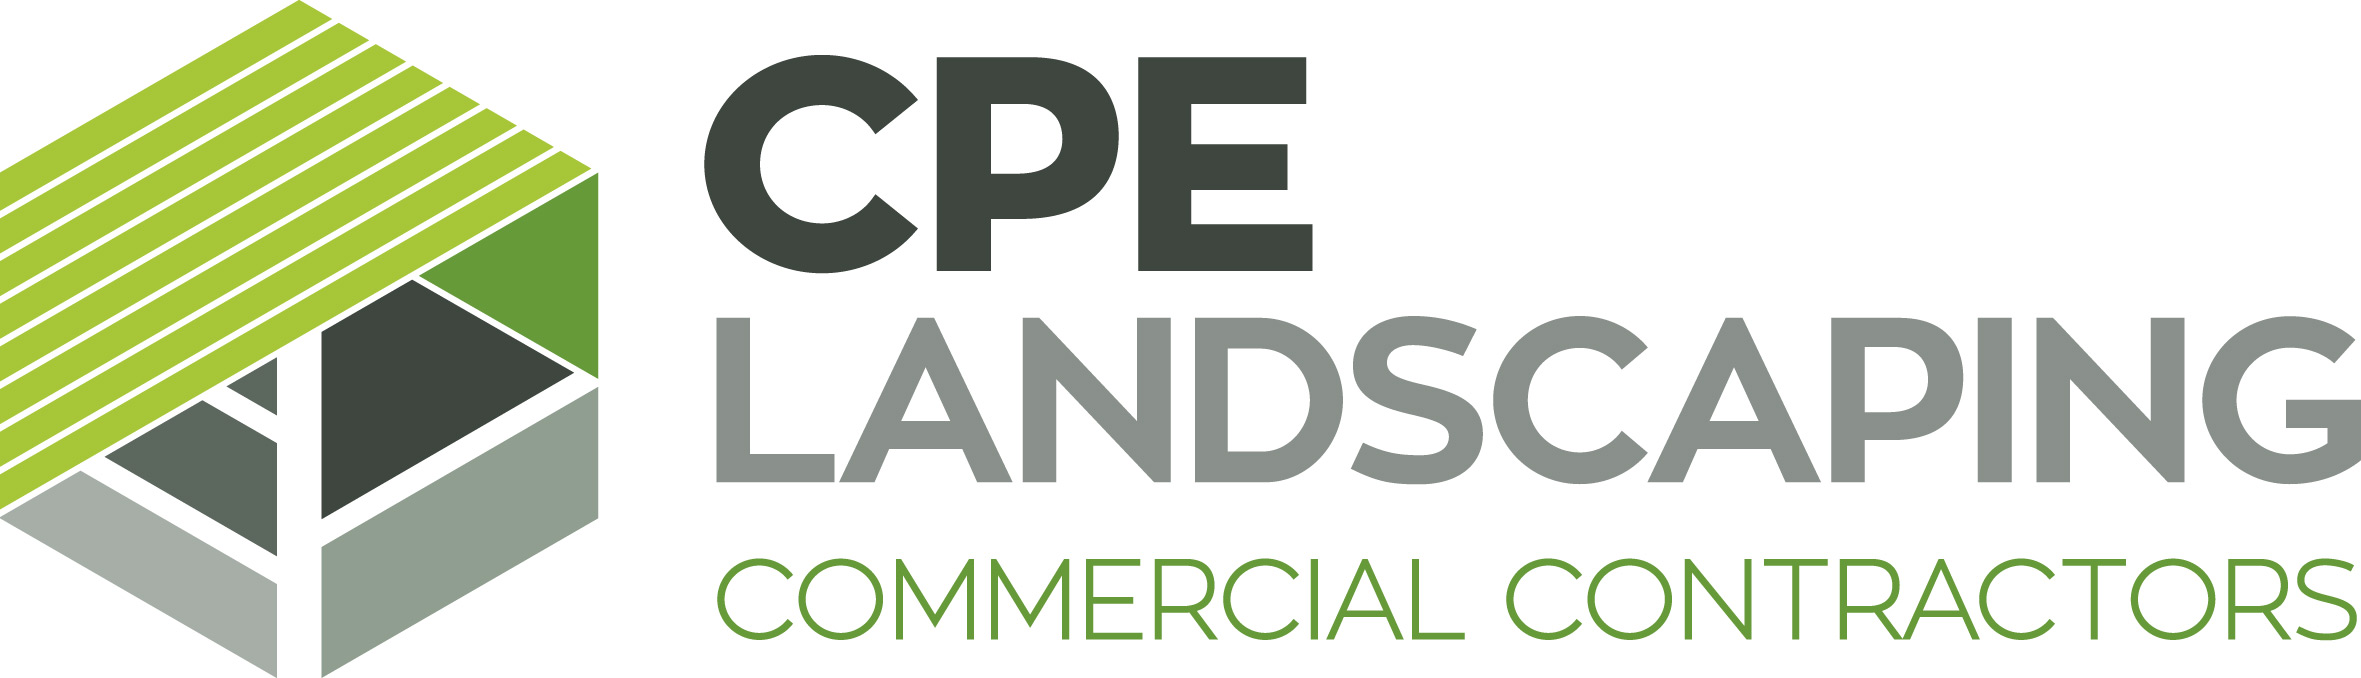 CPE Landscaping